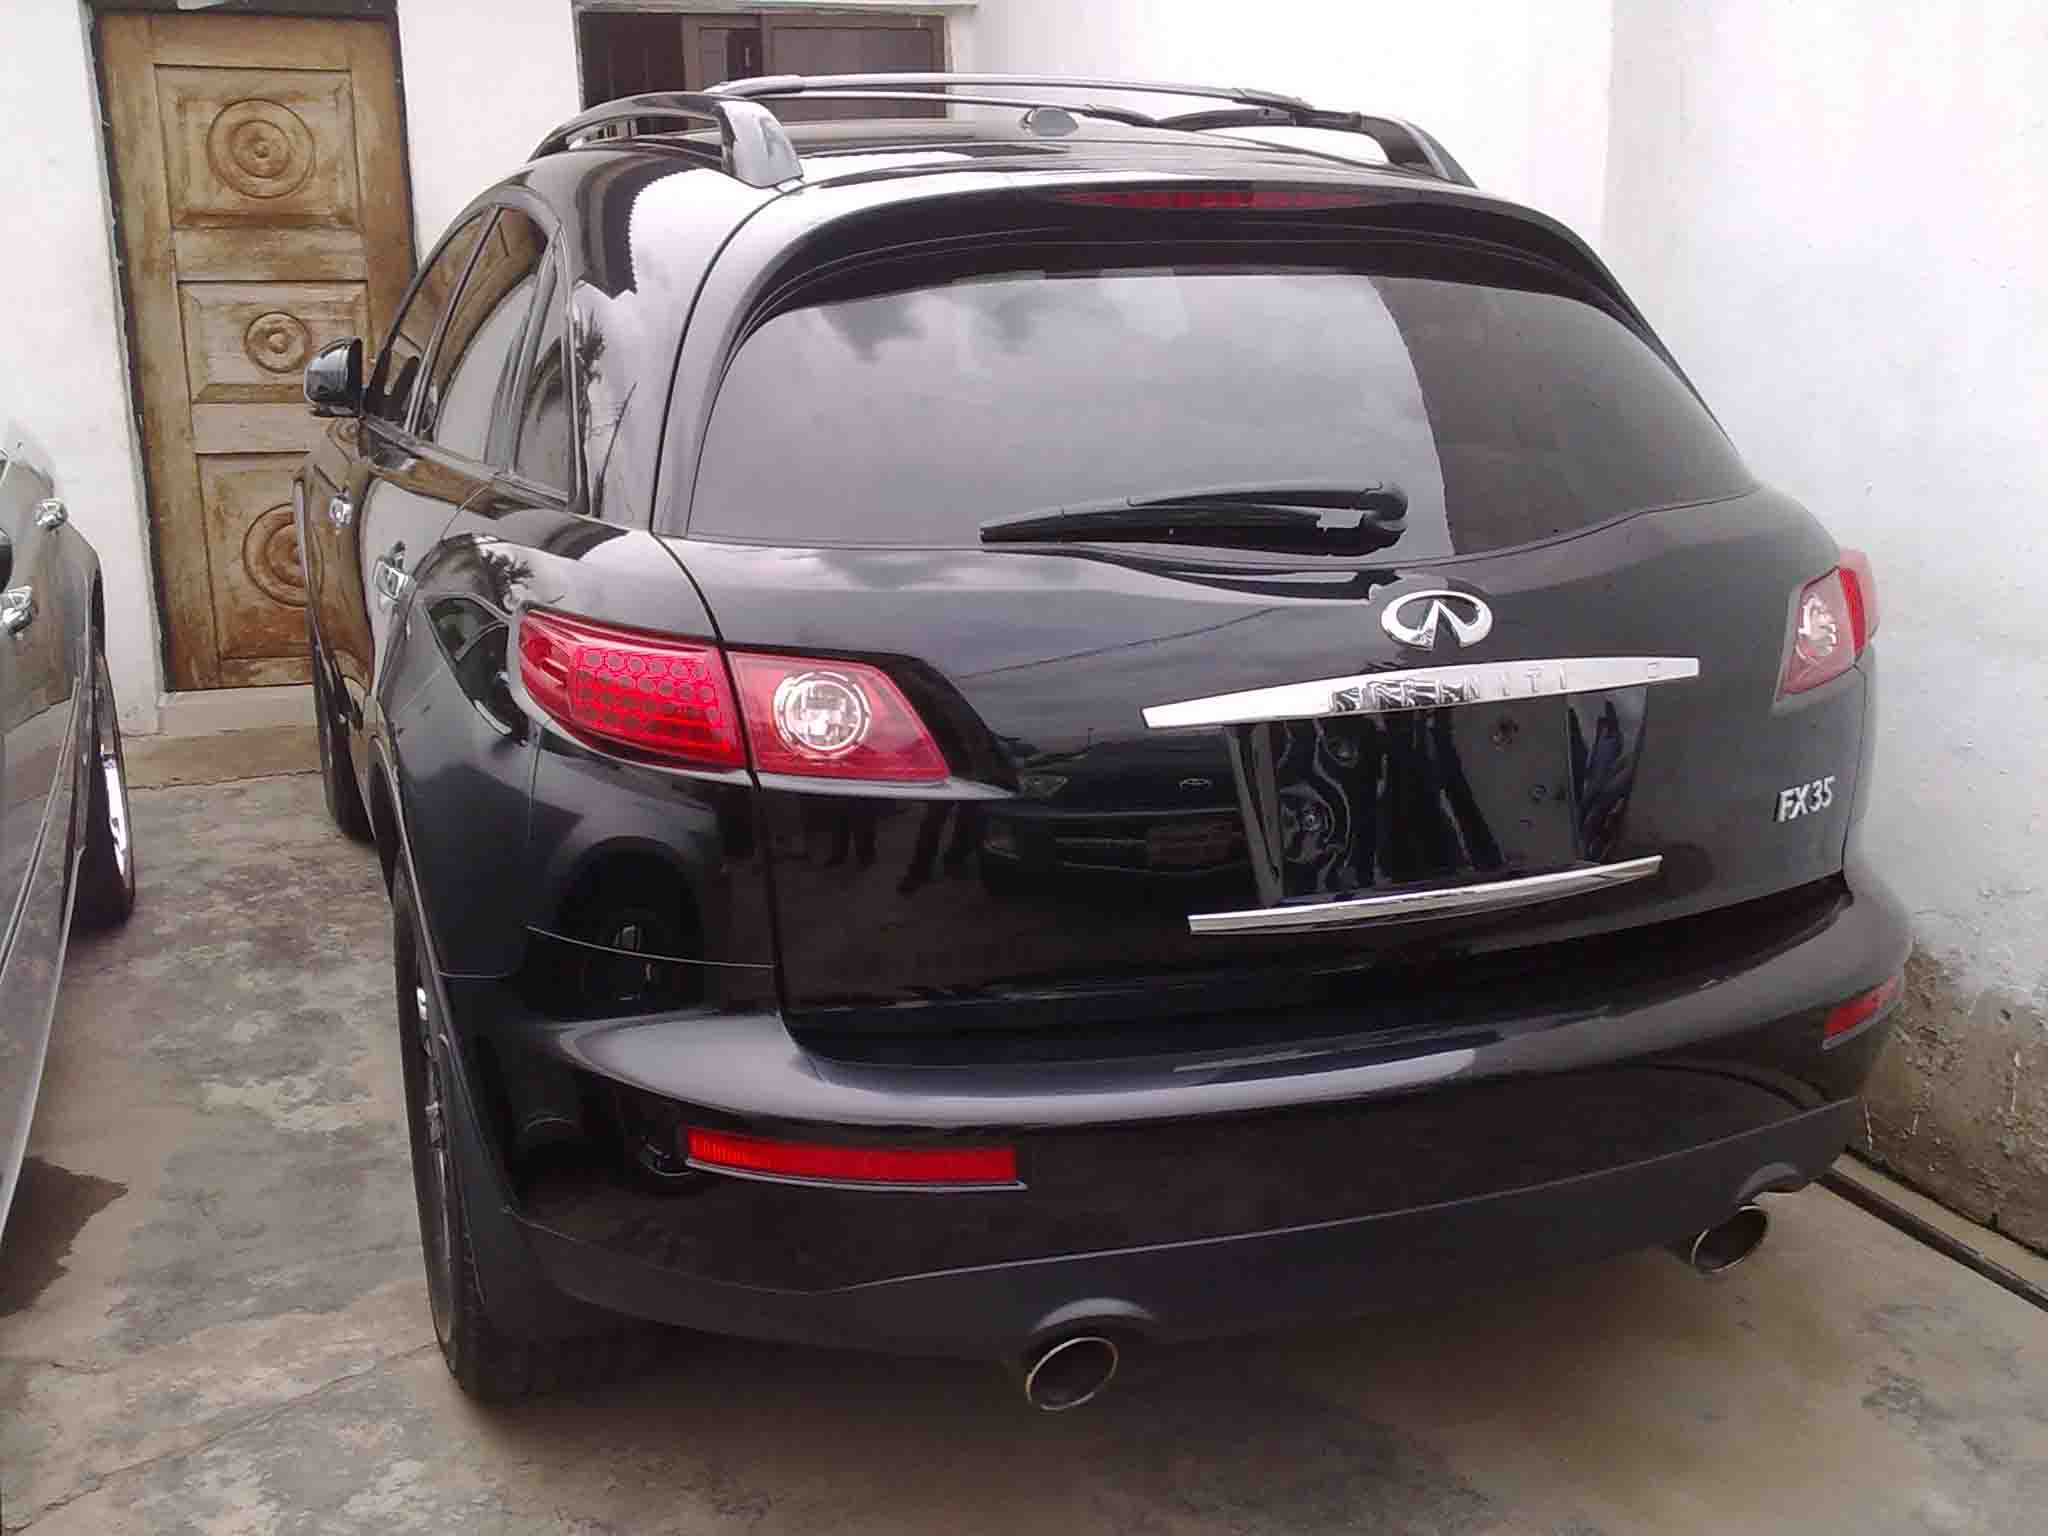 2006 infiniti fx35 super clean autos nigeria adaptive cruise control automatic onoff headlights bluetooth cellular phone dvd entertainment system hands free multi function remote wkeyless ignition vanachro Gallery